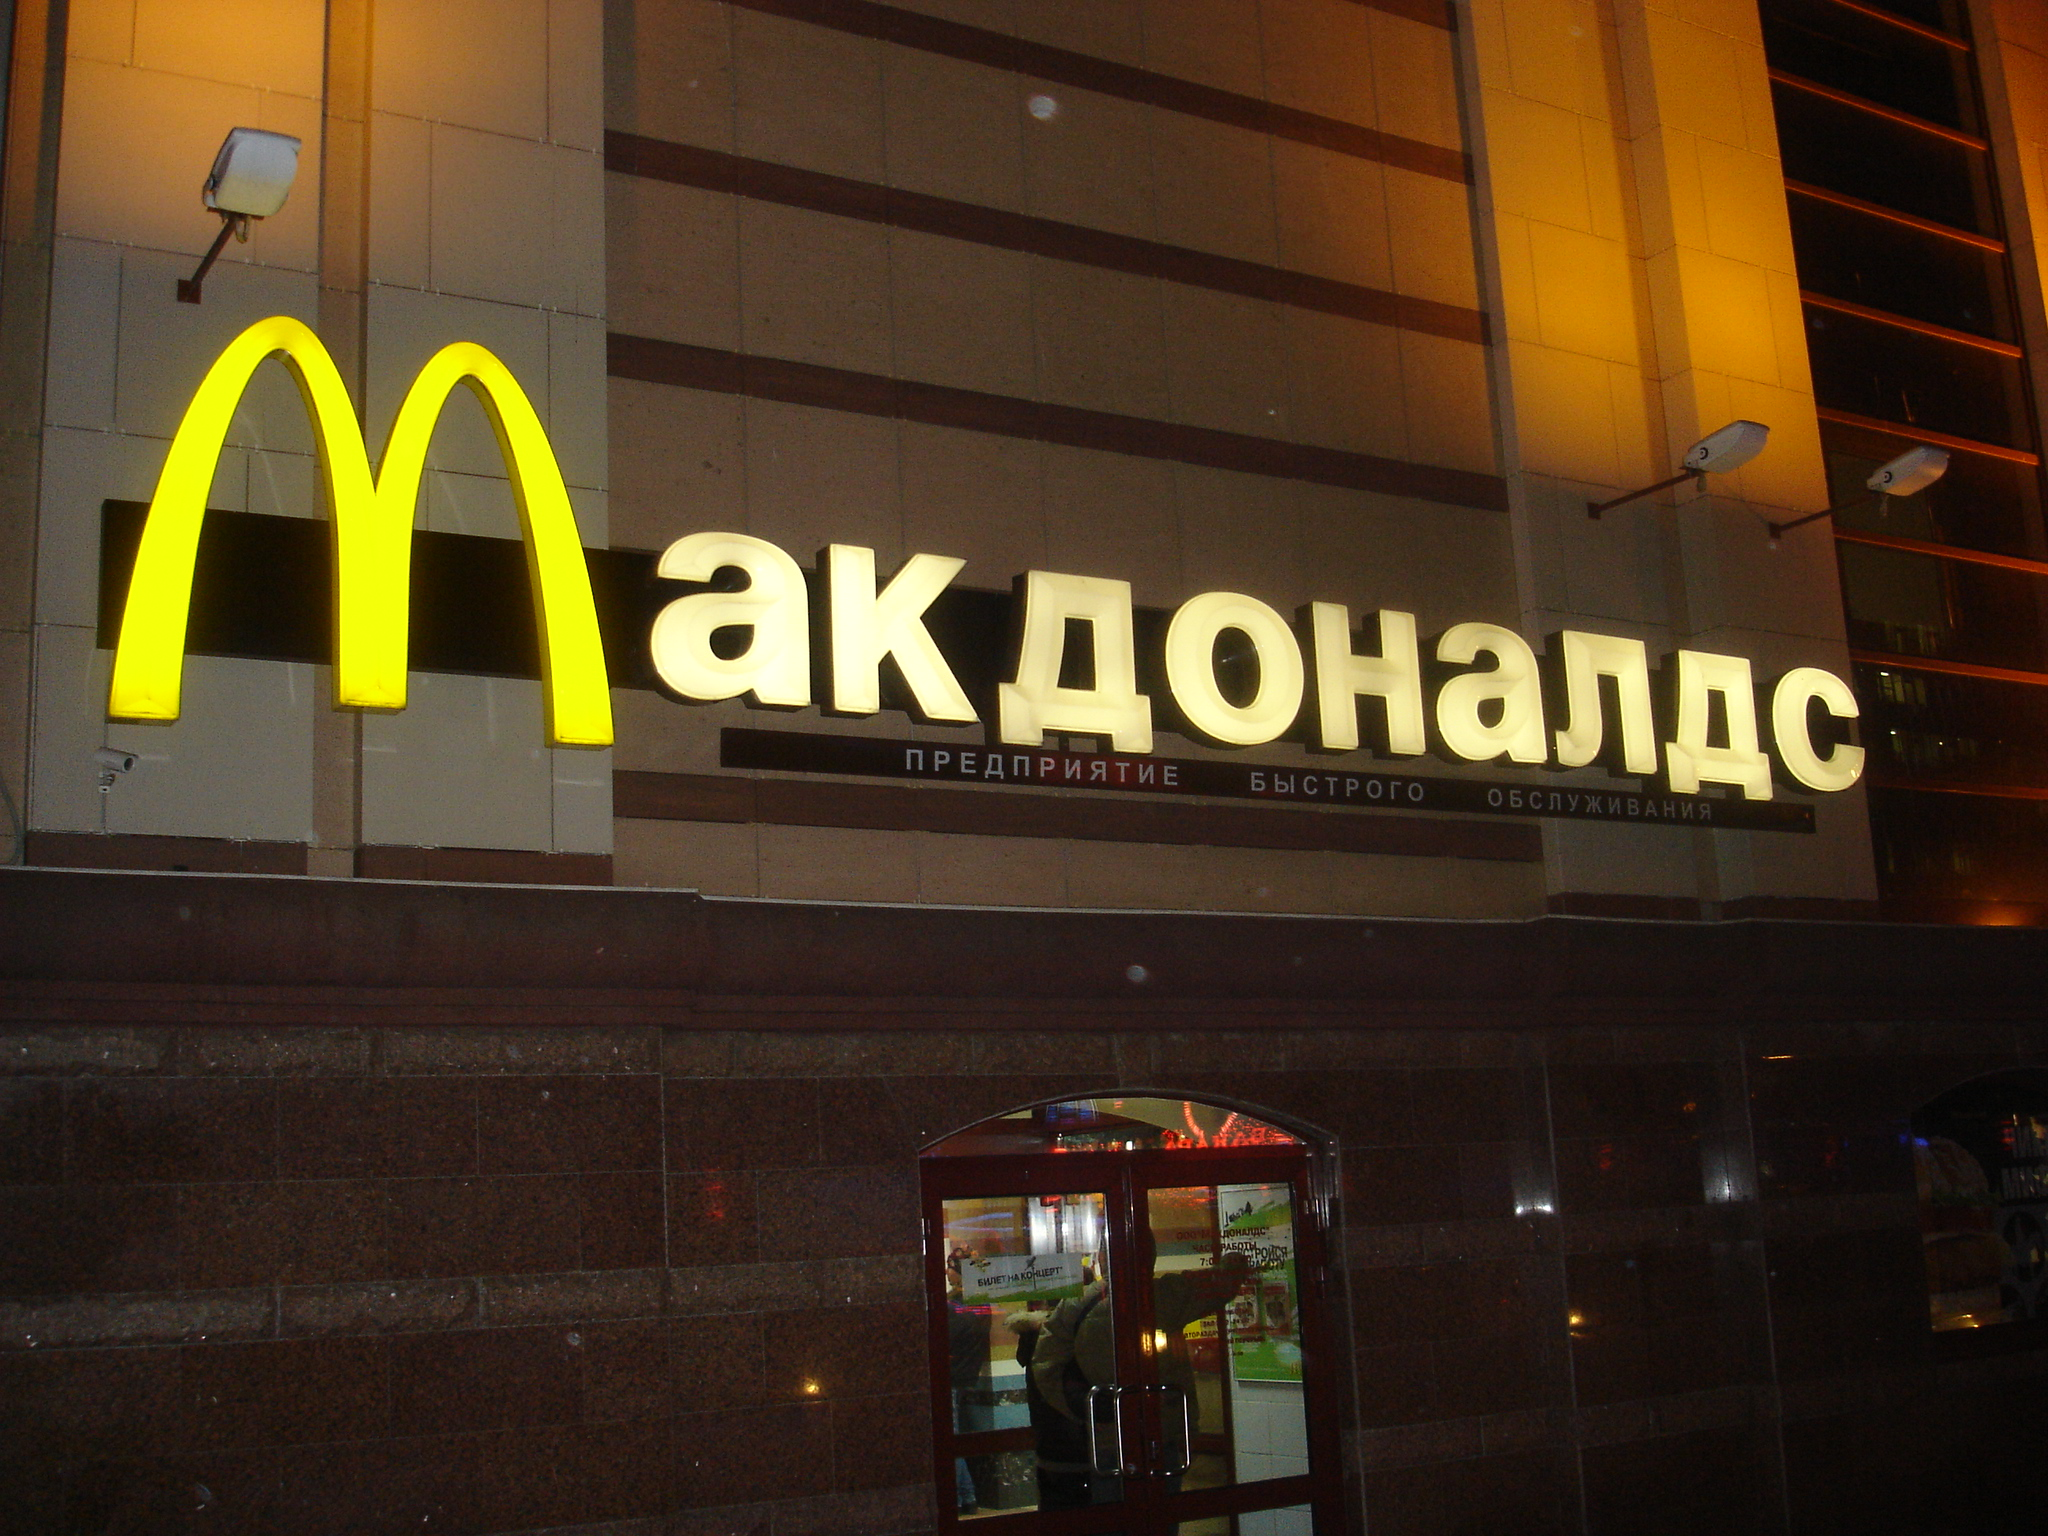 mcdonalds russia Russia has shut down four mcdonald's restaurants in moscow for alleged sanitary violations in a move critics said was the latest blow in its tit-for-tat sanctions.